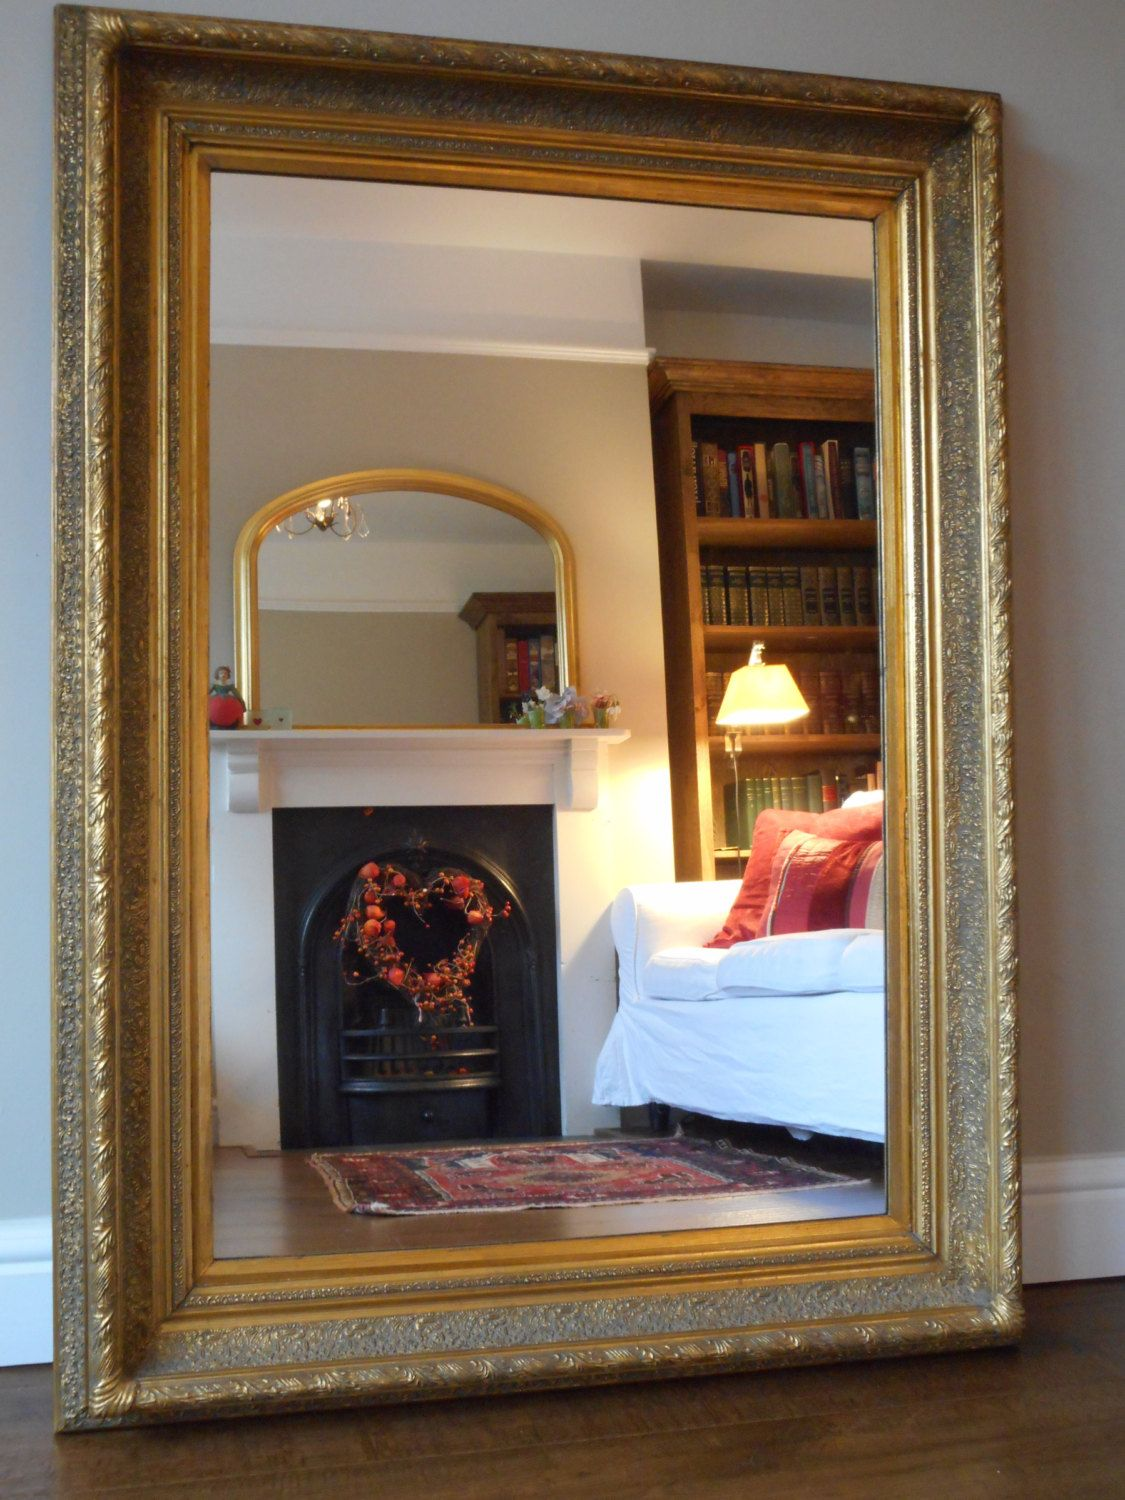 Antique Wall Mirrors antique style large gilt frame wall mirrorconsort pictures and